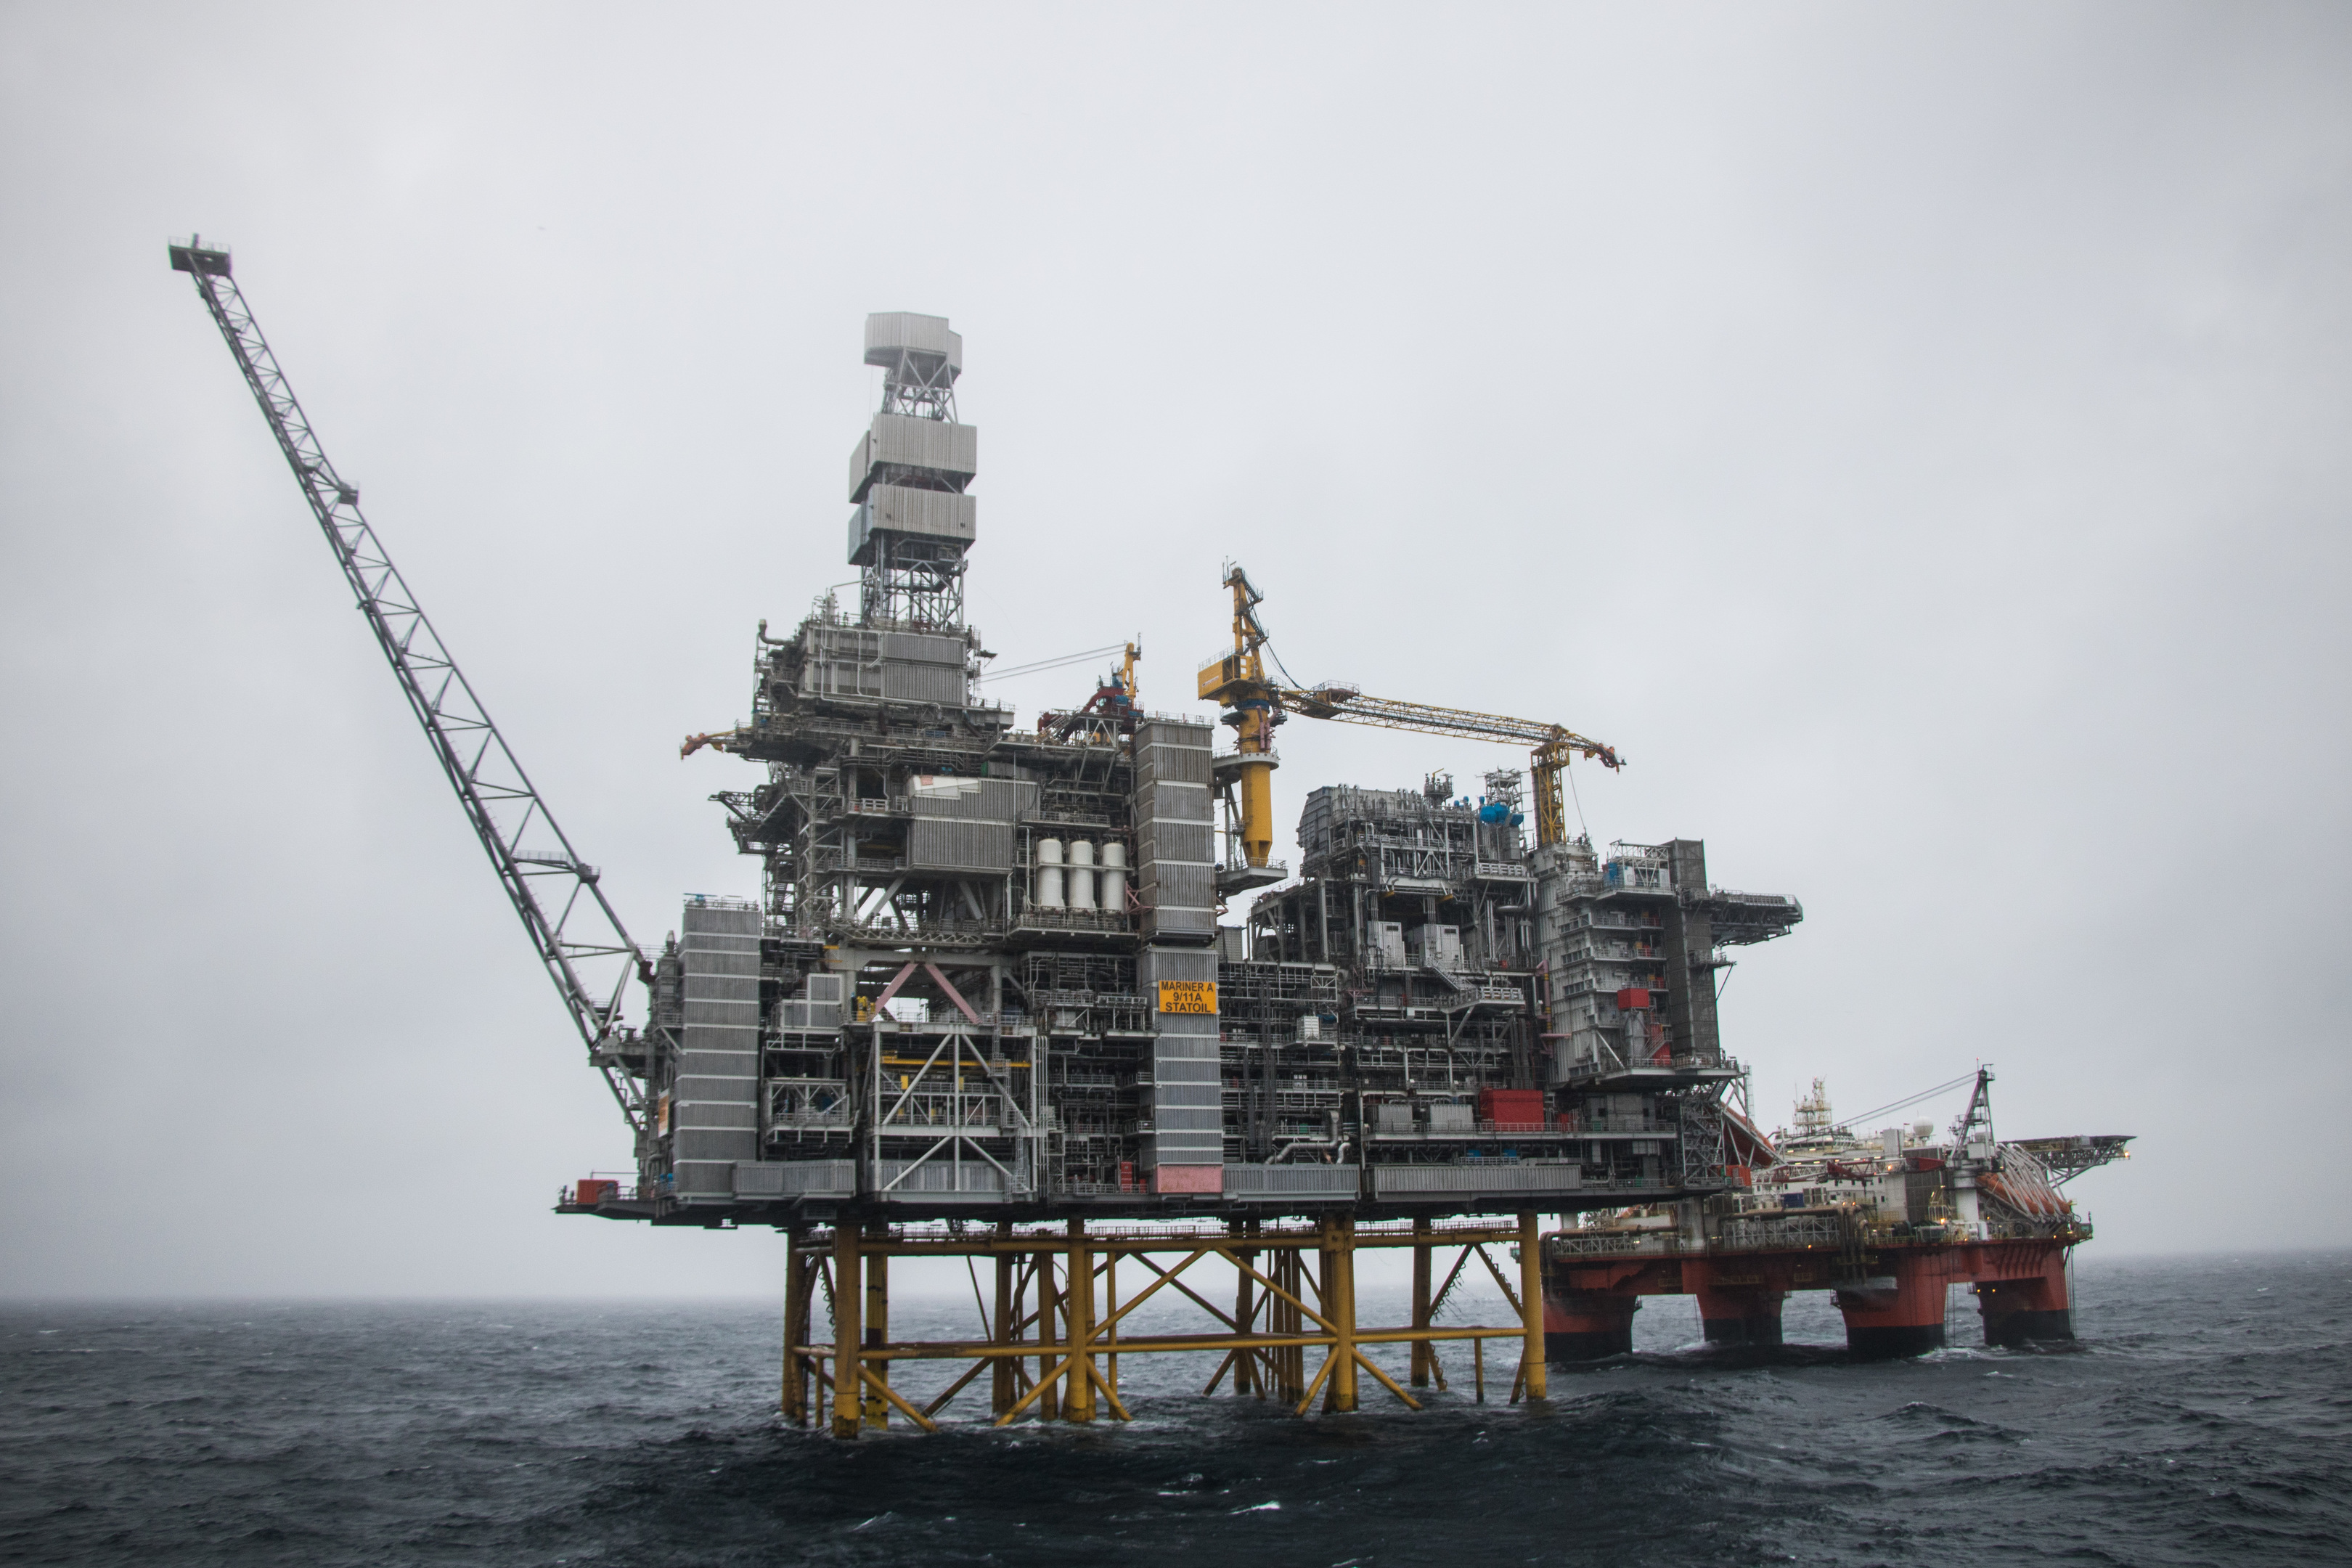 Mariner platform with the Safe Boreas. Photo credit: Jamie Baikie/Equinor